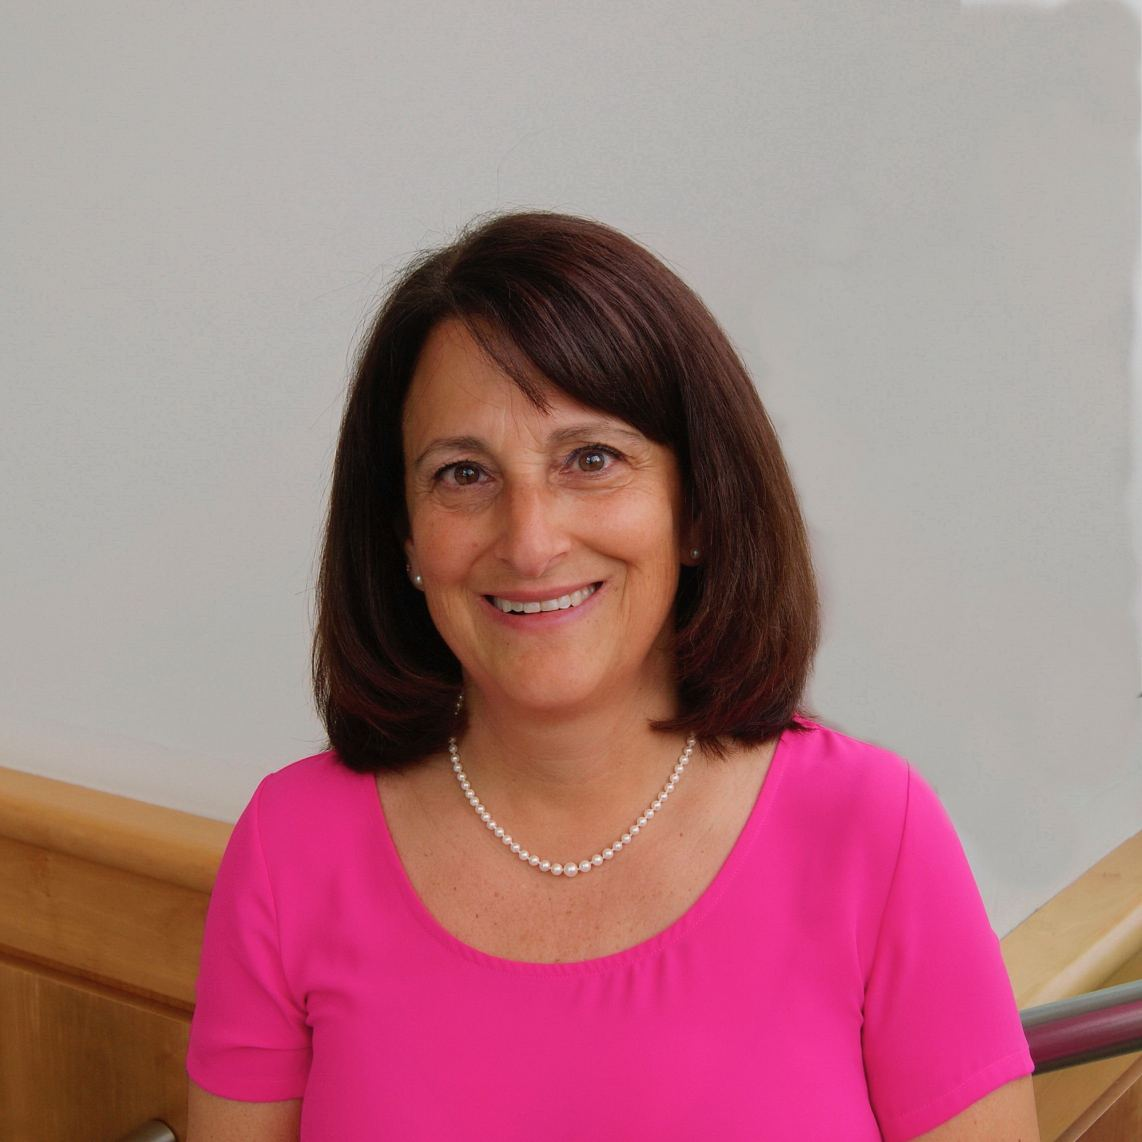 Dr. Bette Mariani